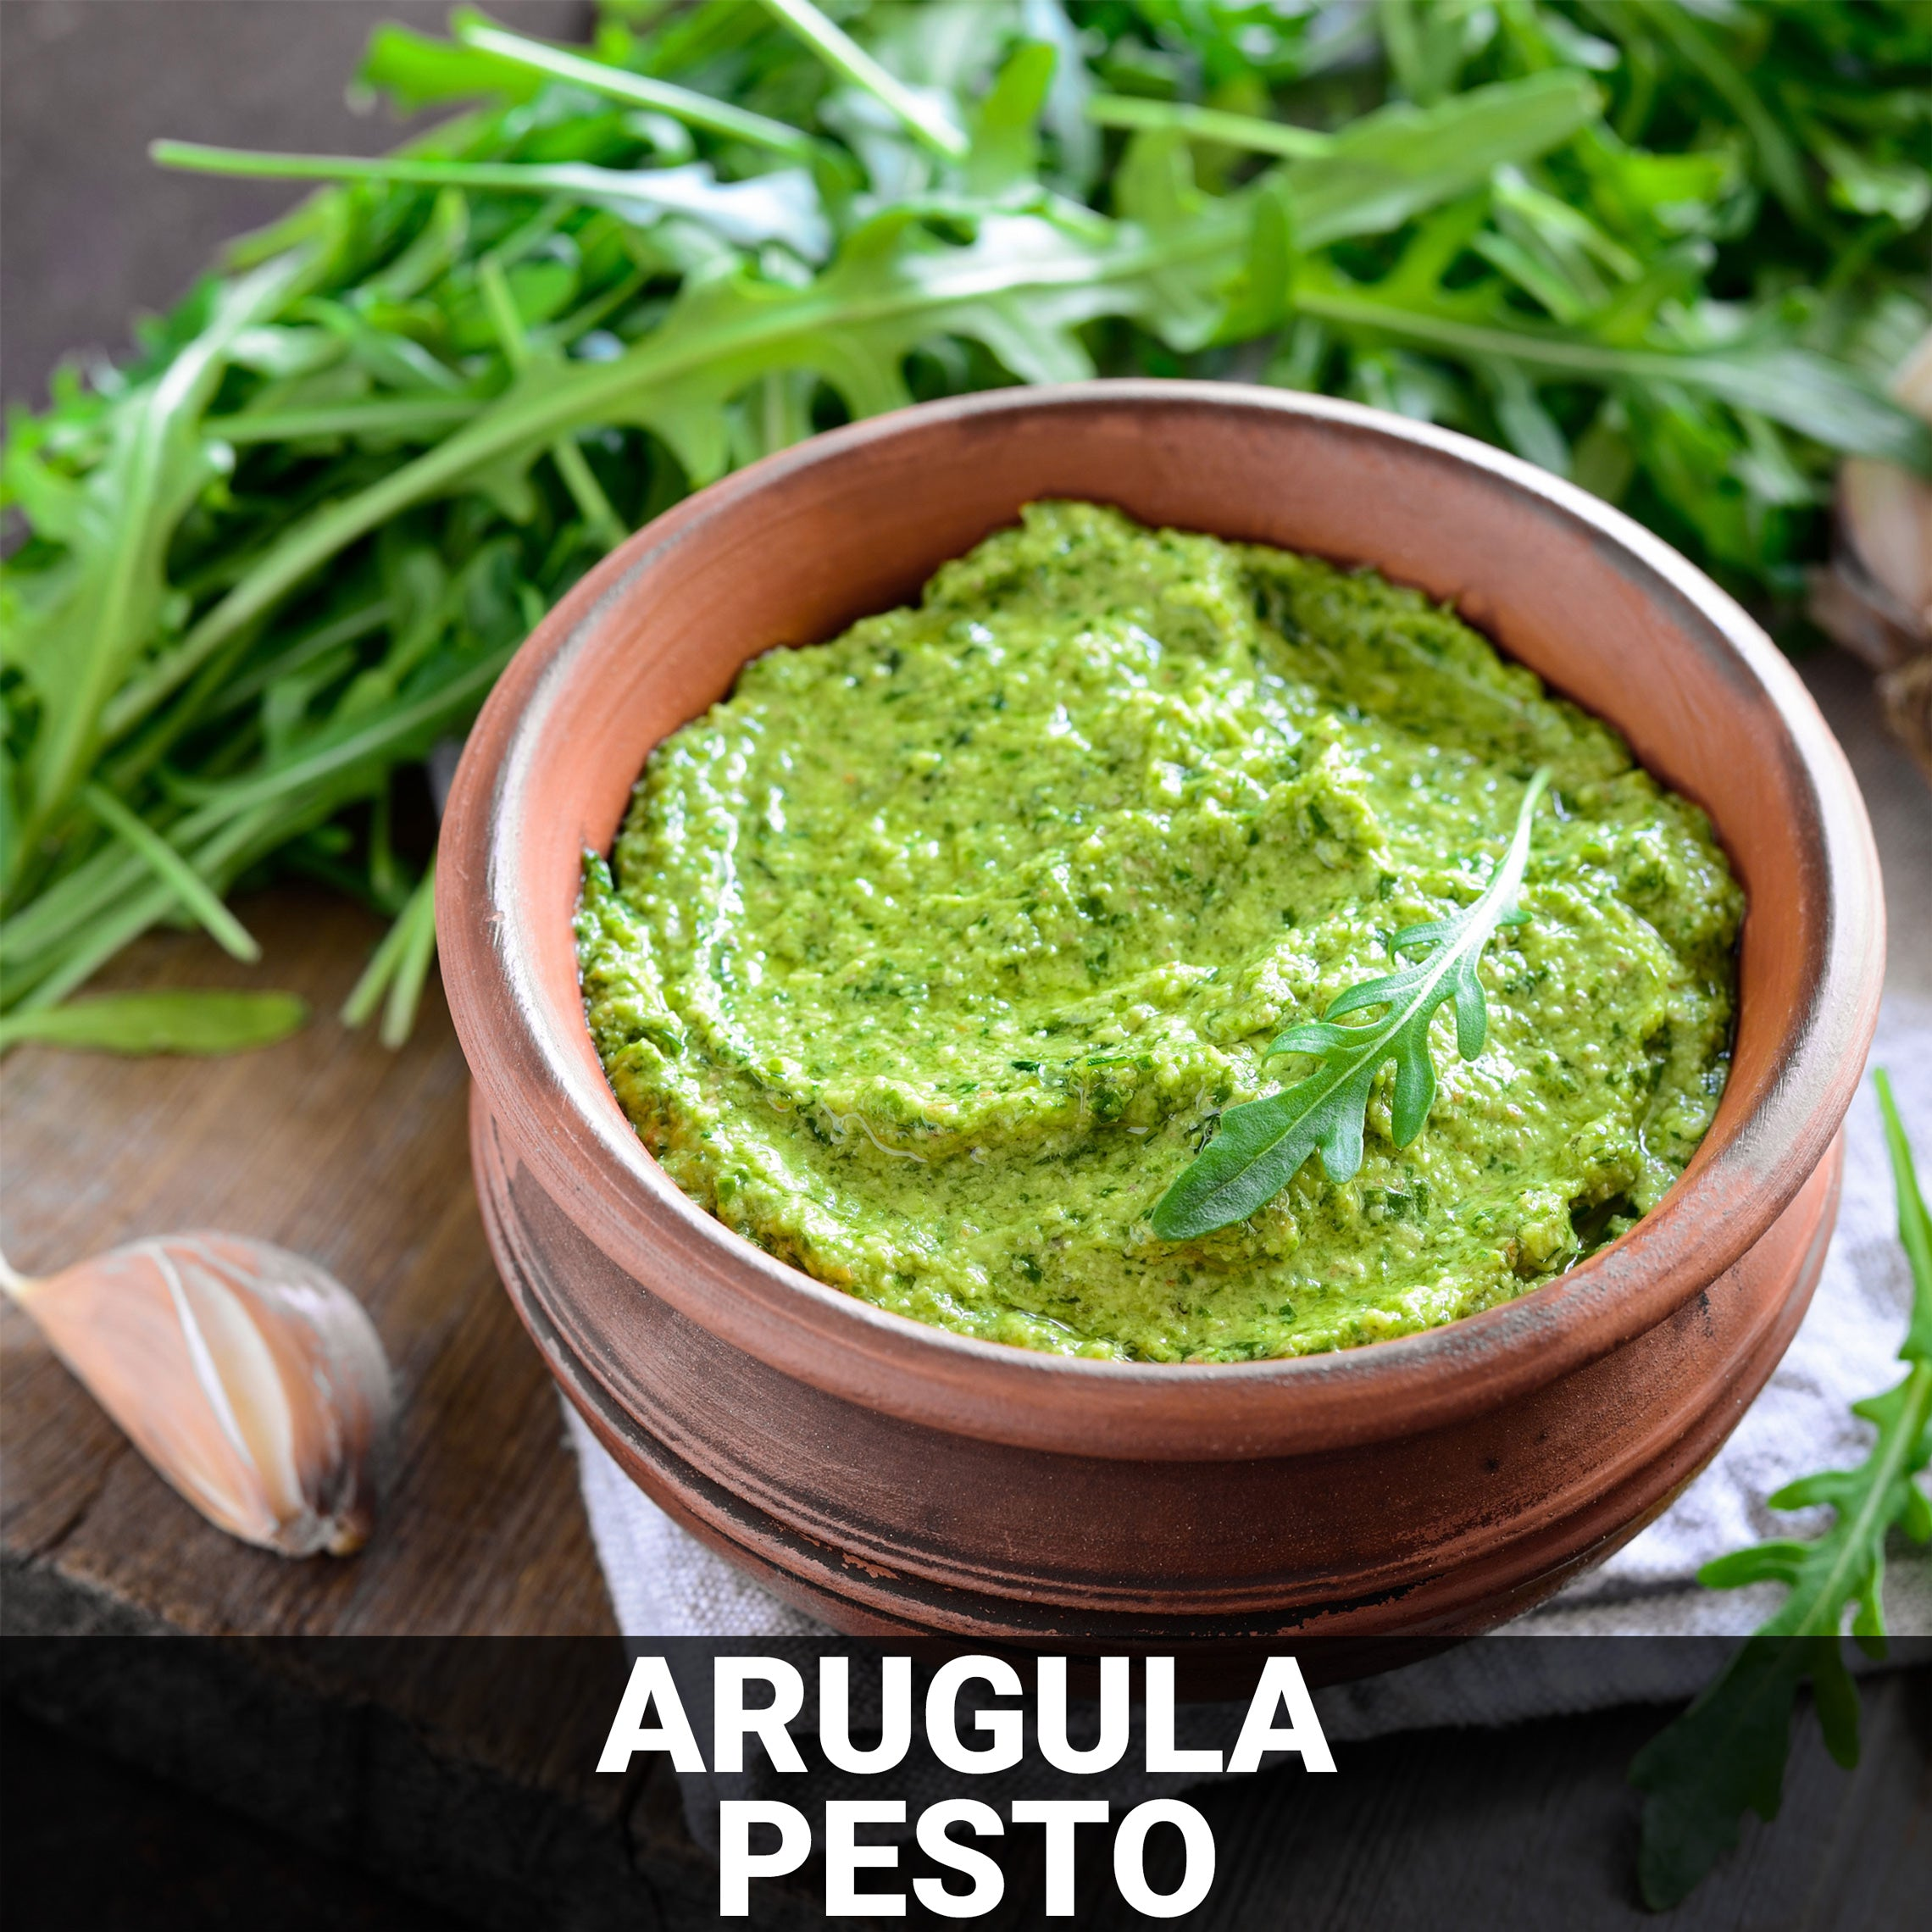 Arugula Pesto Recipe - Foods Alive